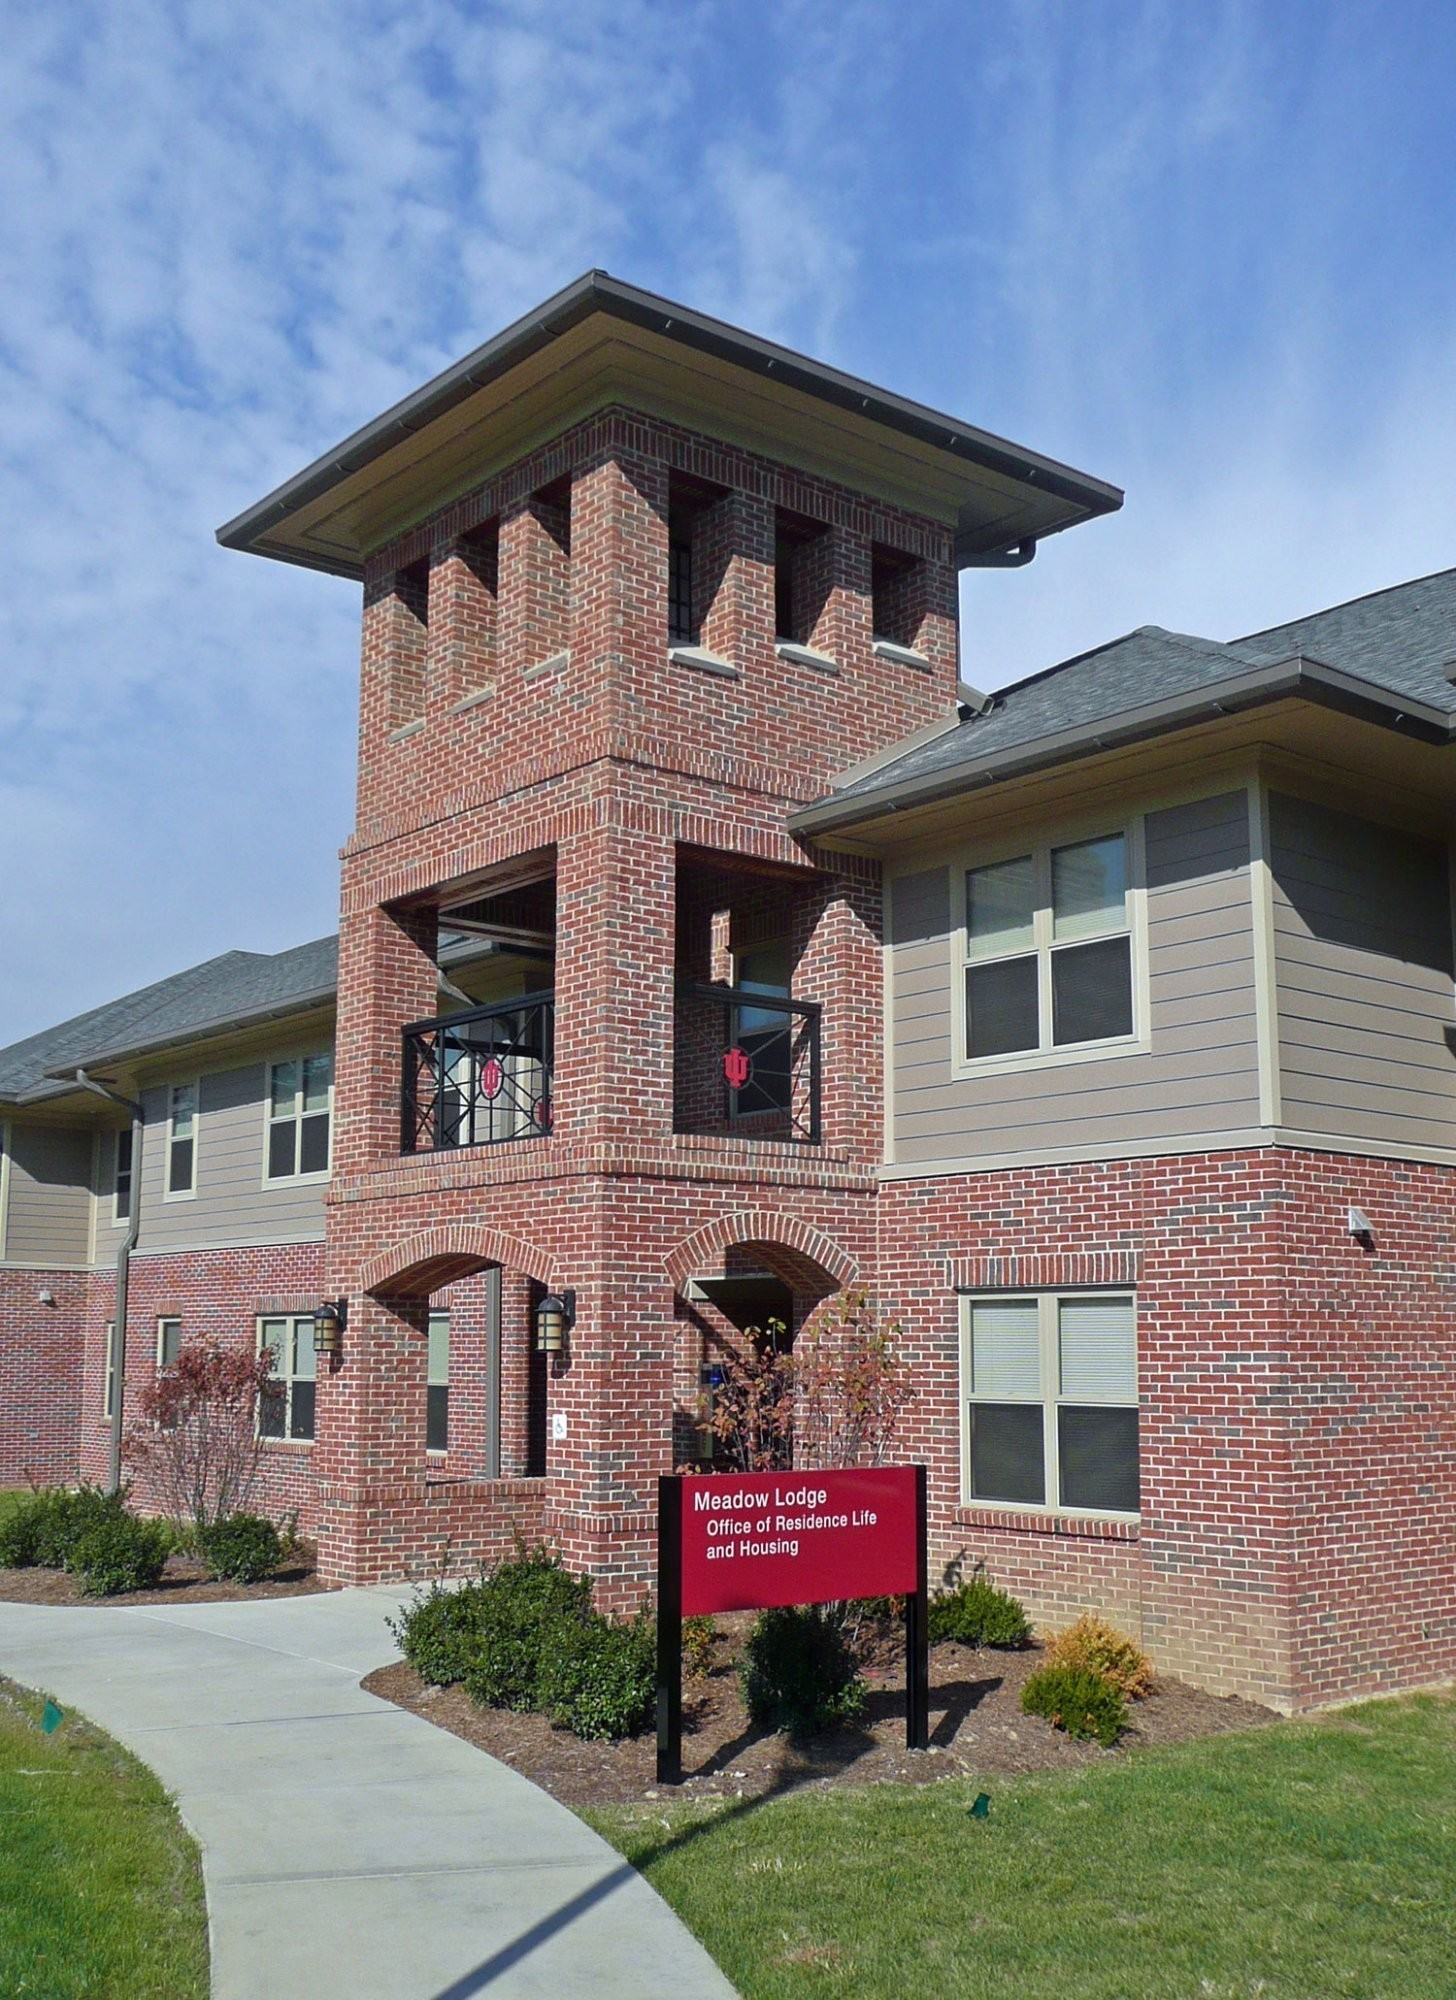 indiana-university-southeast-student-lodges-exterior-entrance-day